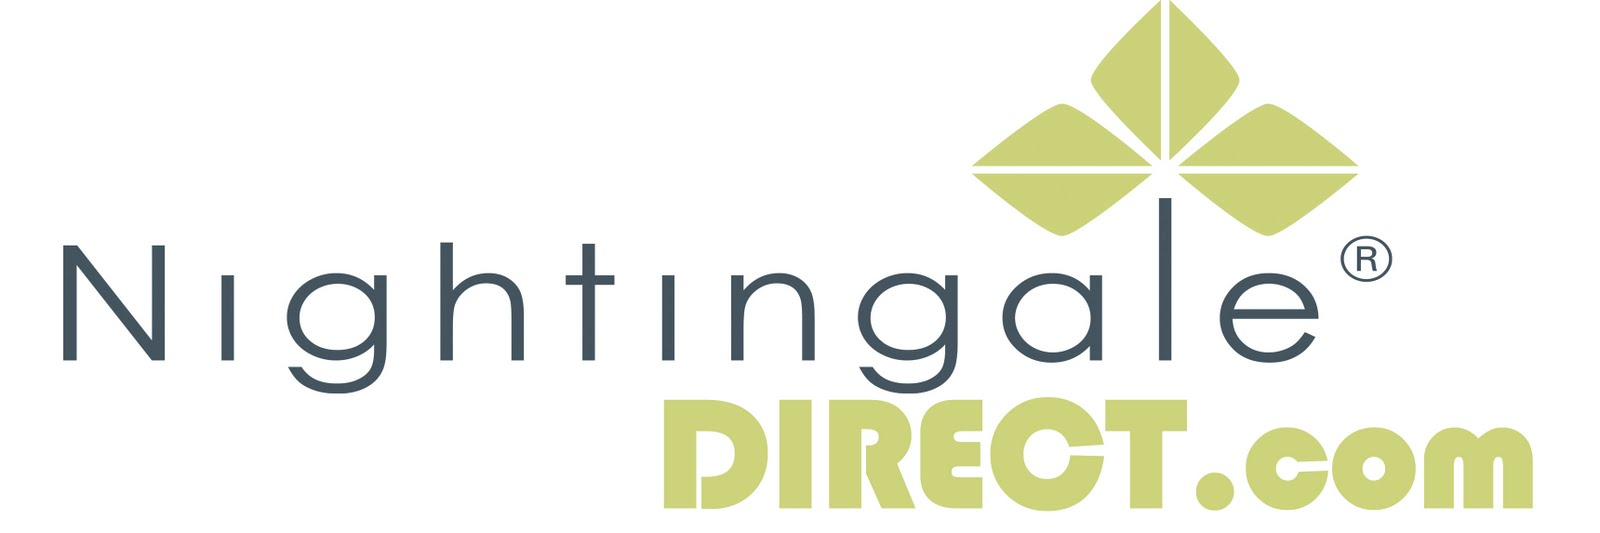 NightingaleDirect.com Blog